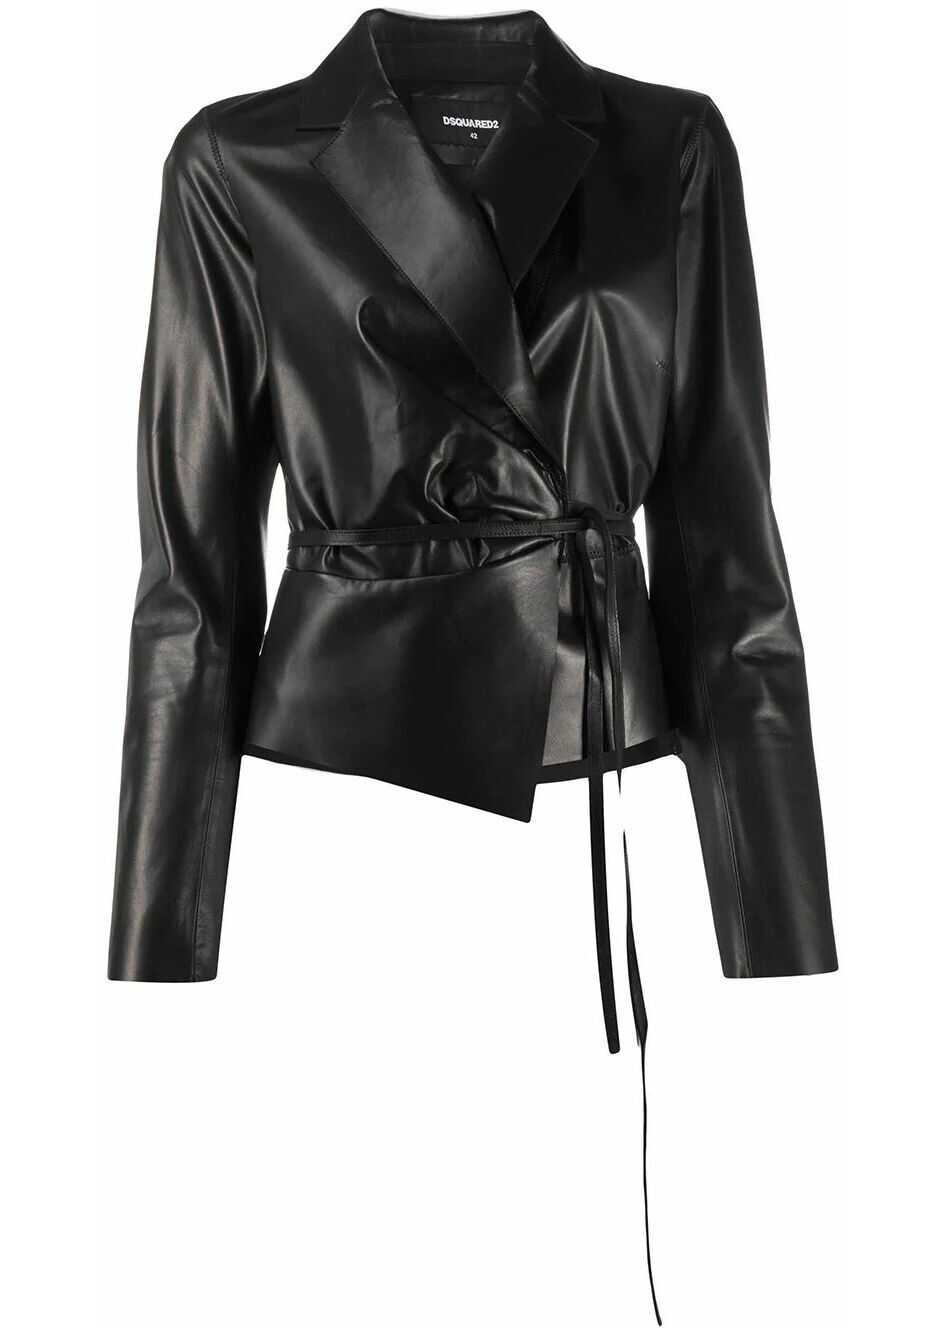 DSQUARED2 Leather Outerwear Jacket BLACK